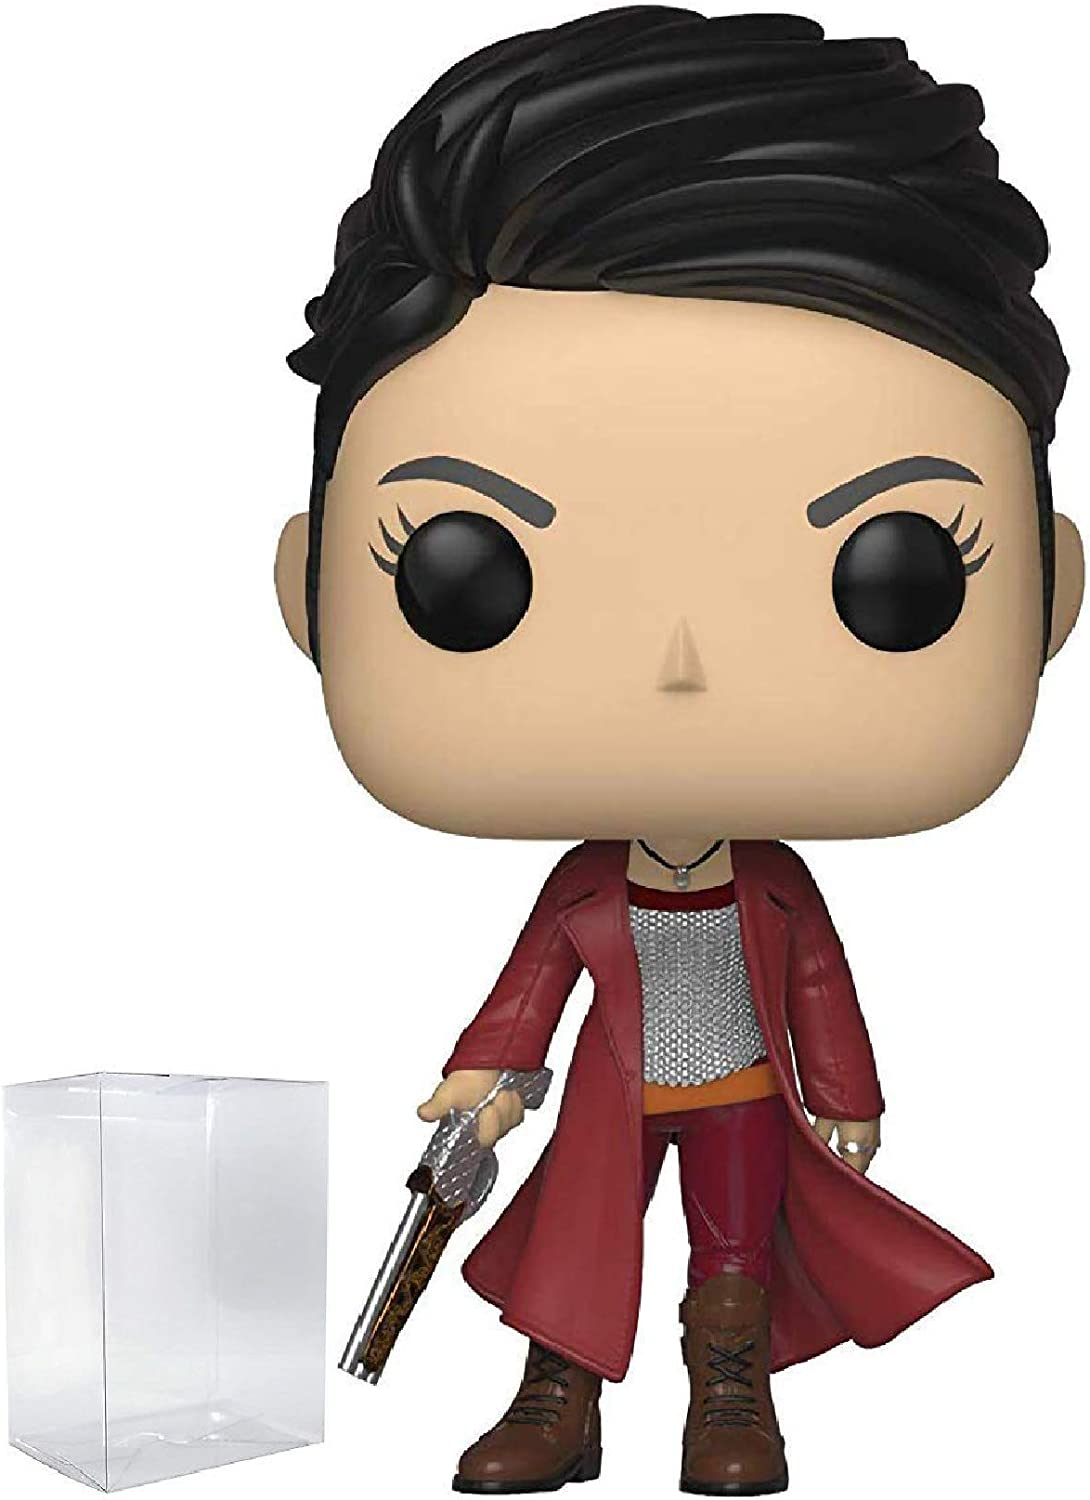 *NEW* Mortal Engines Hester Shaw POP Vinyl Figure Box Protector by Funko